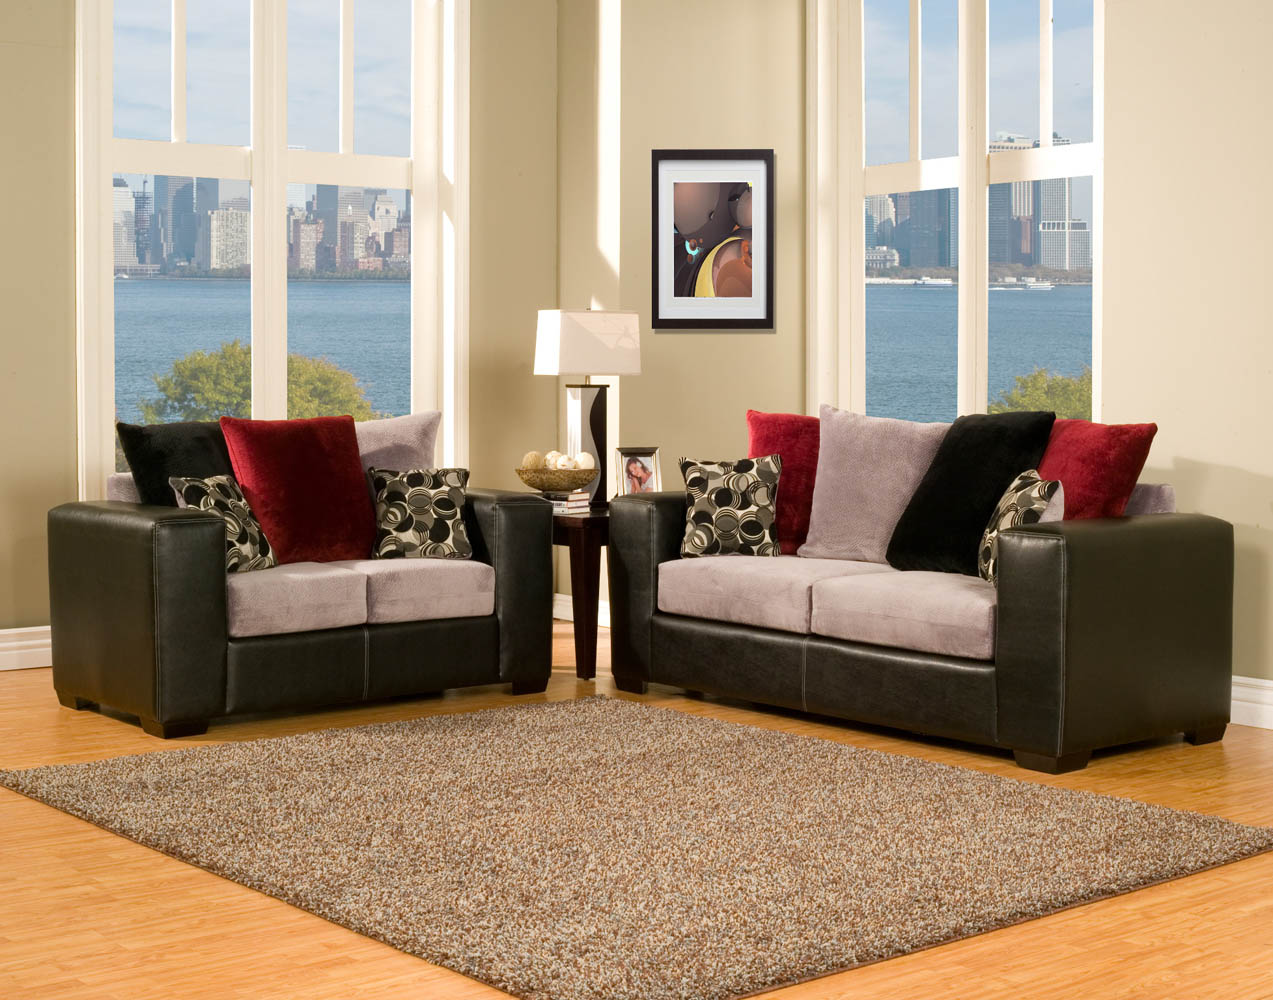 Excellent 2 Piece Black Grey And Red Modern Sofa Set Gamerscity Chair Design For Home Gamerscityorg